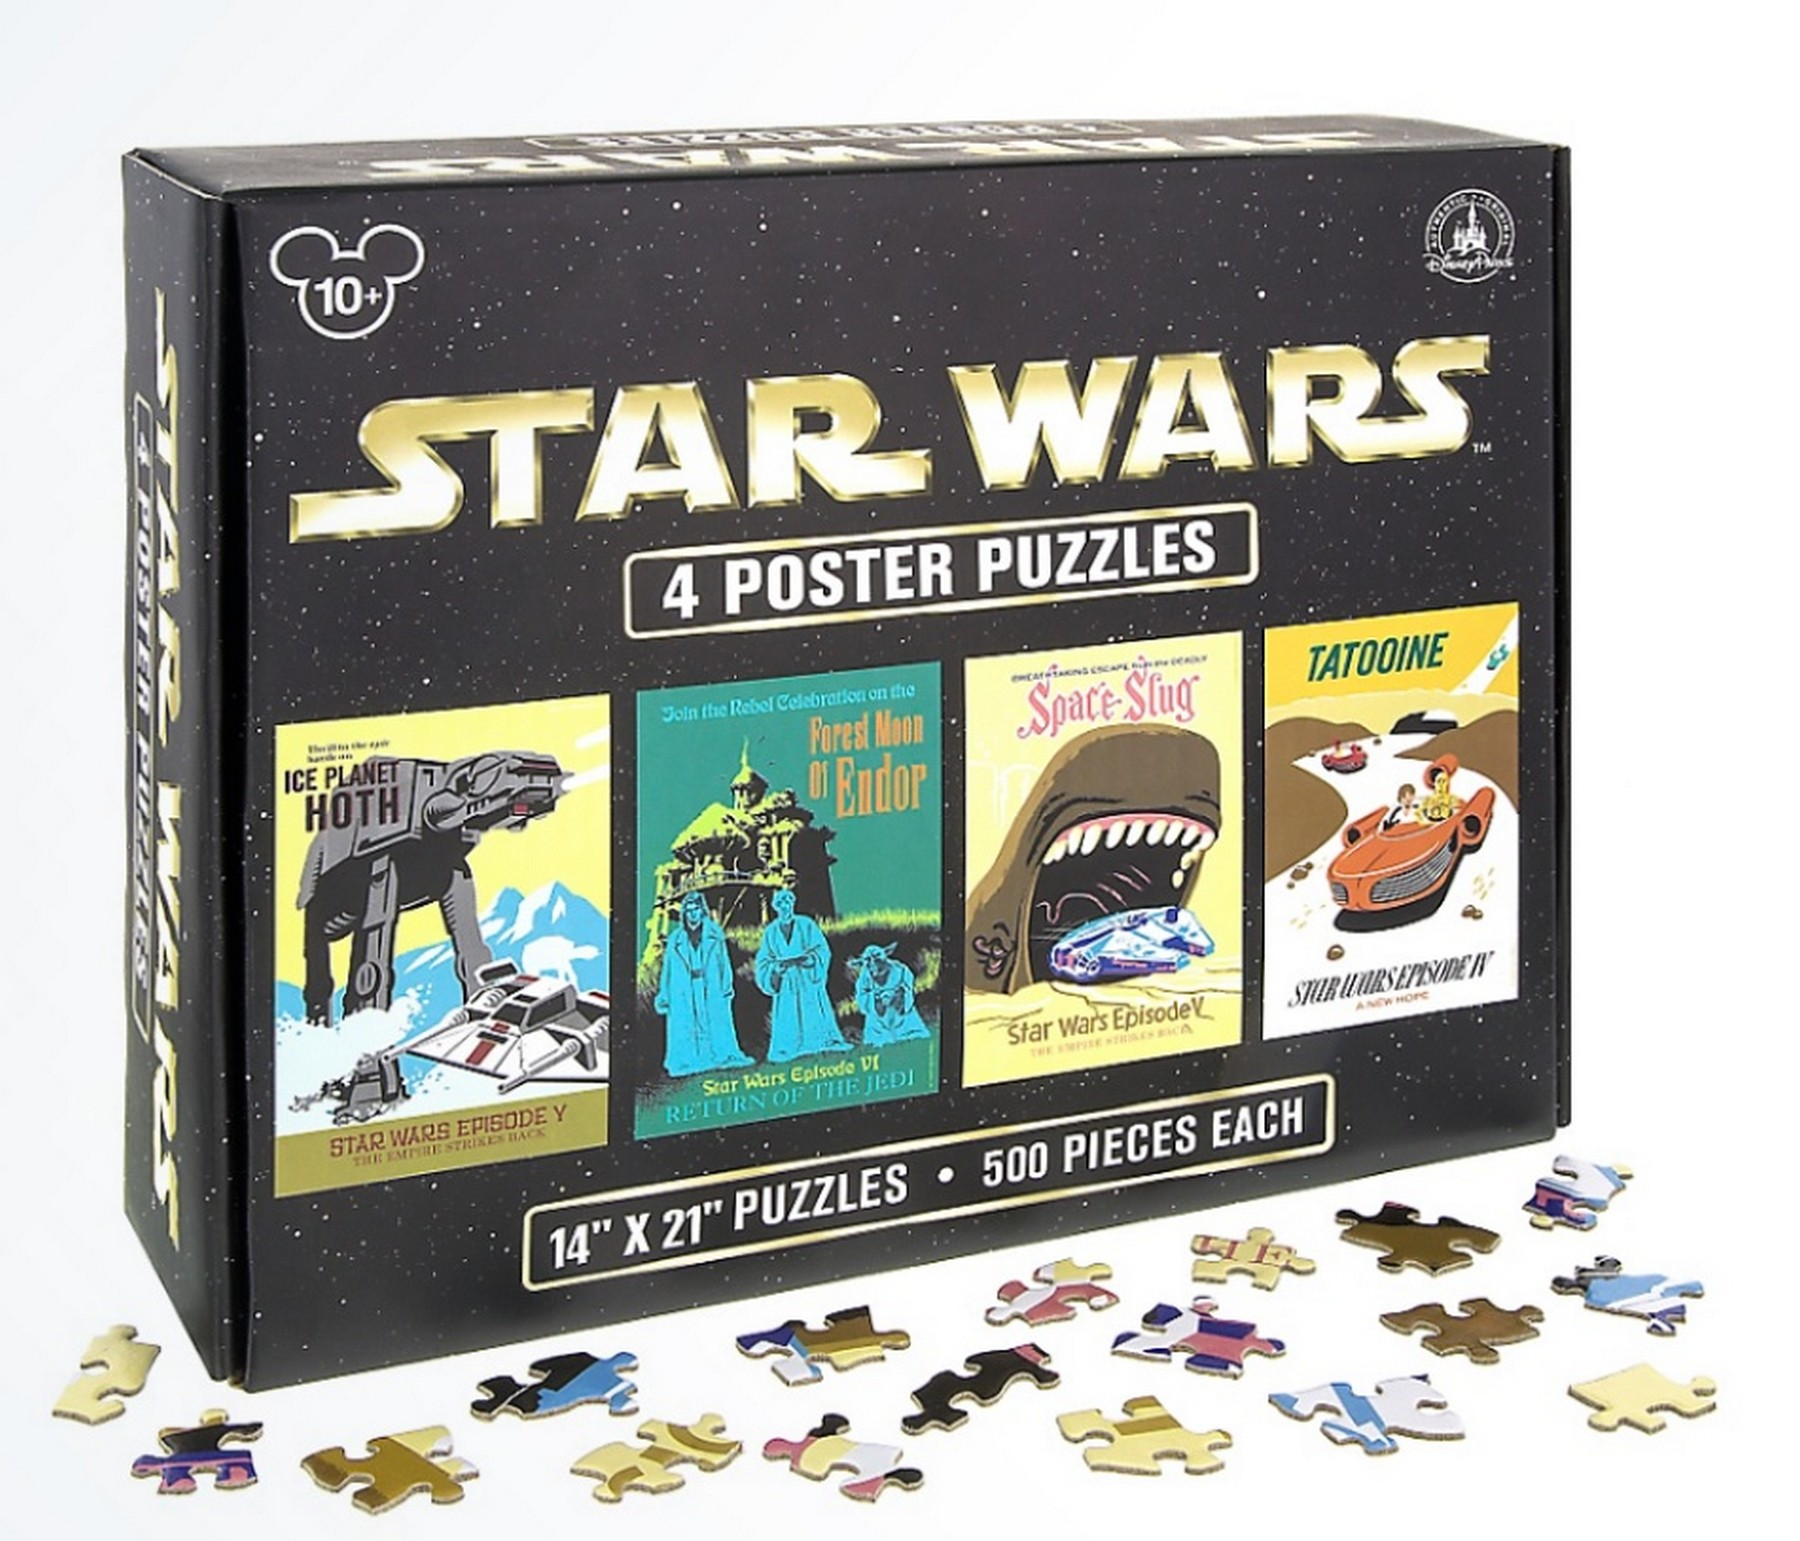 Disney Star Wars Four 500 Piece Poster Puzzles © Dizdude.com